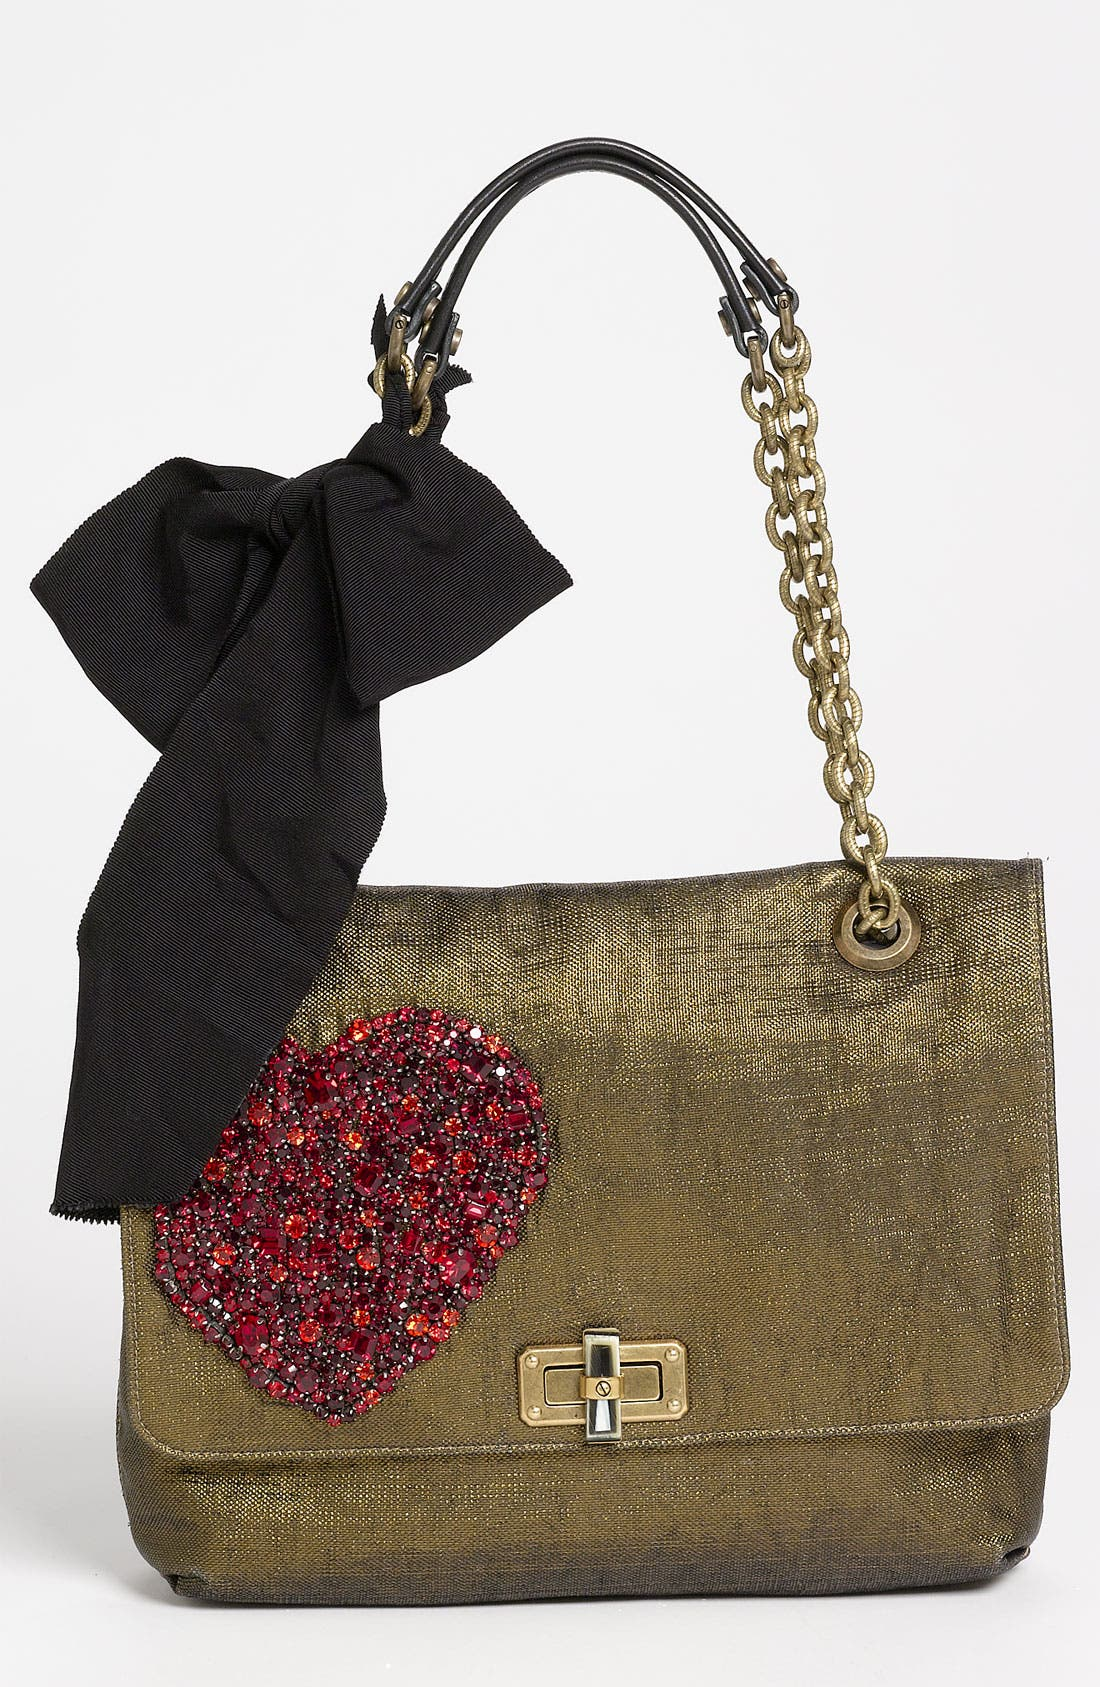 Main Image - Lanvin 'Happy Birthday - Heart' Shoulder Bag